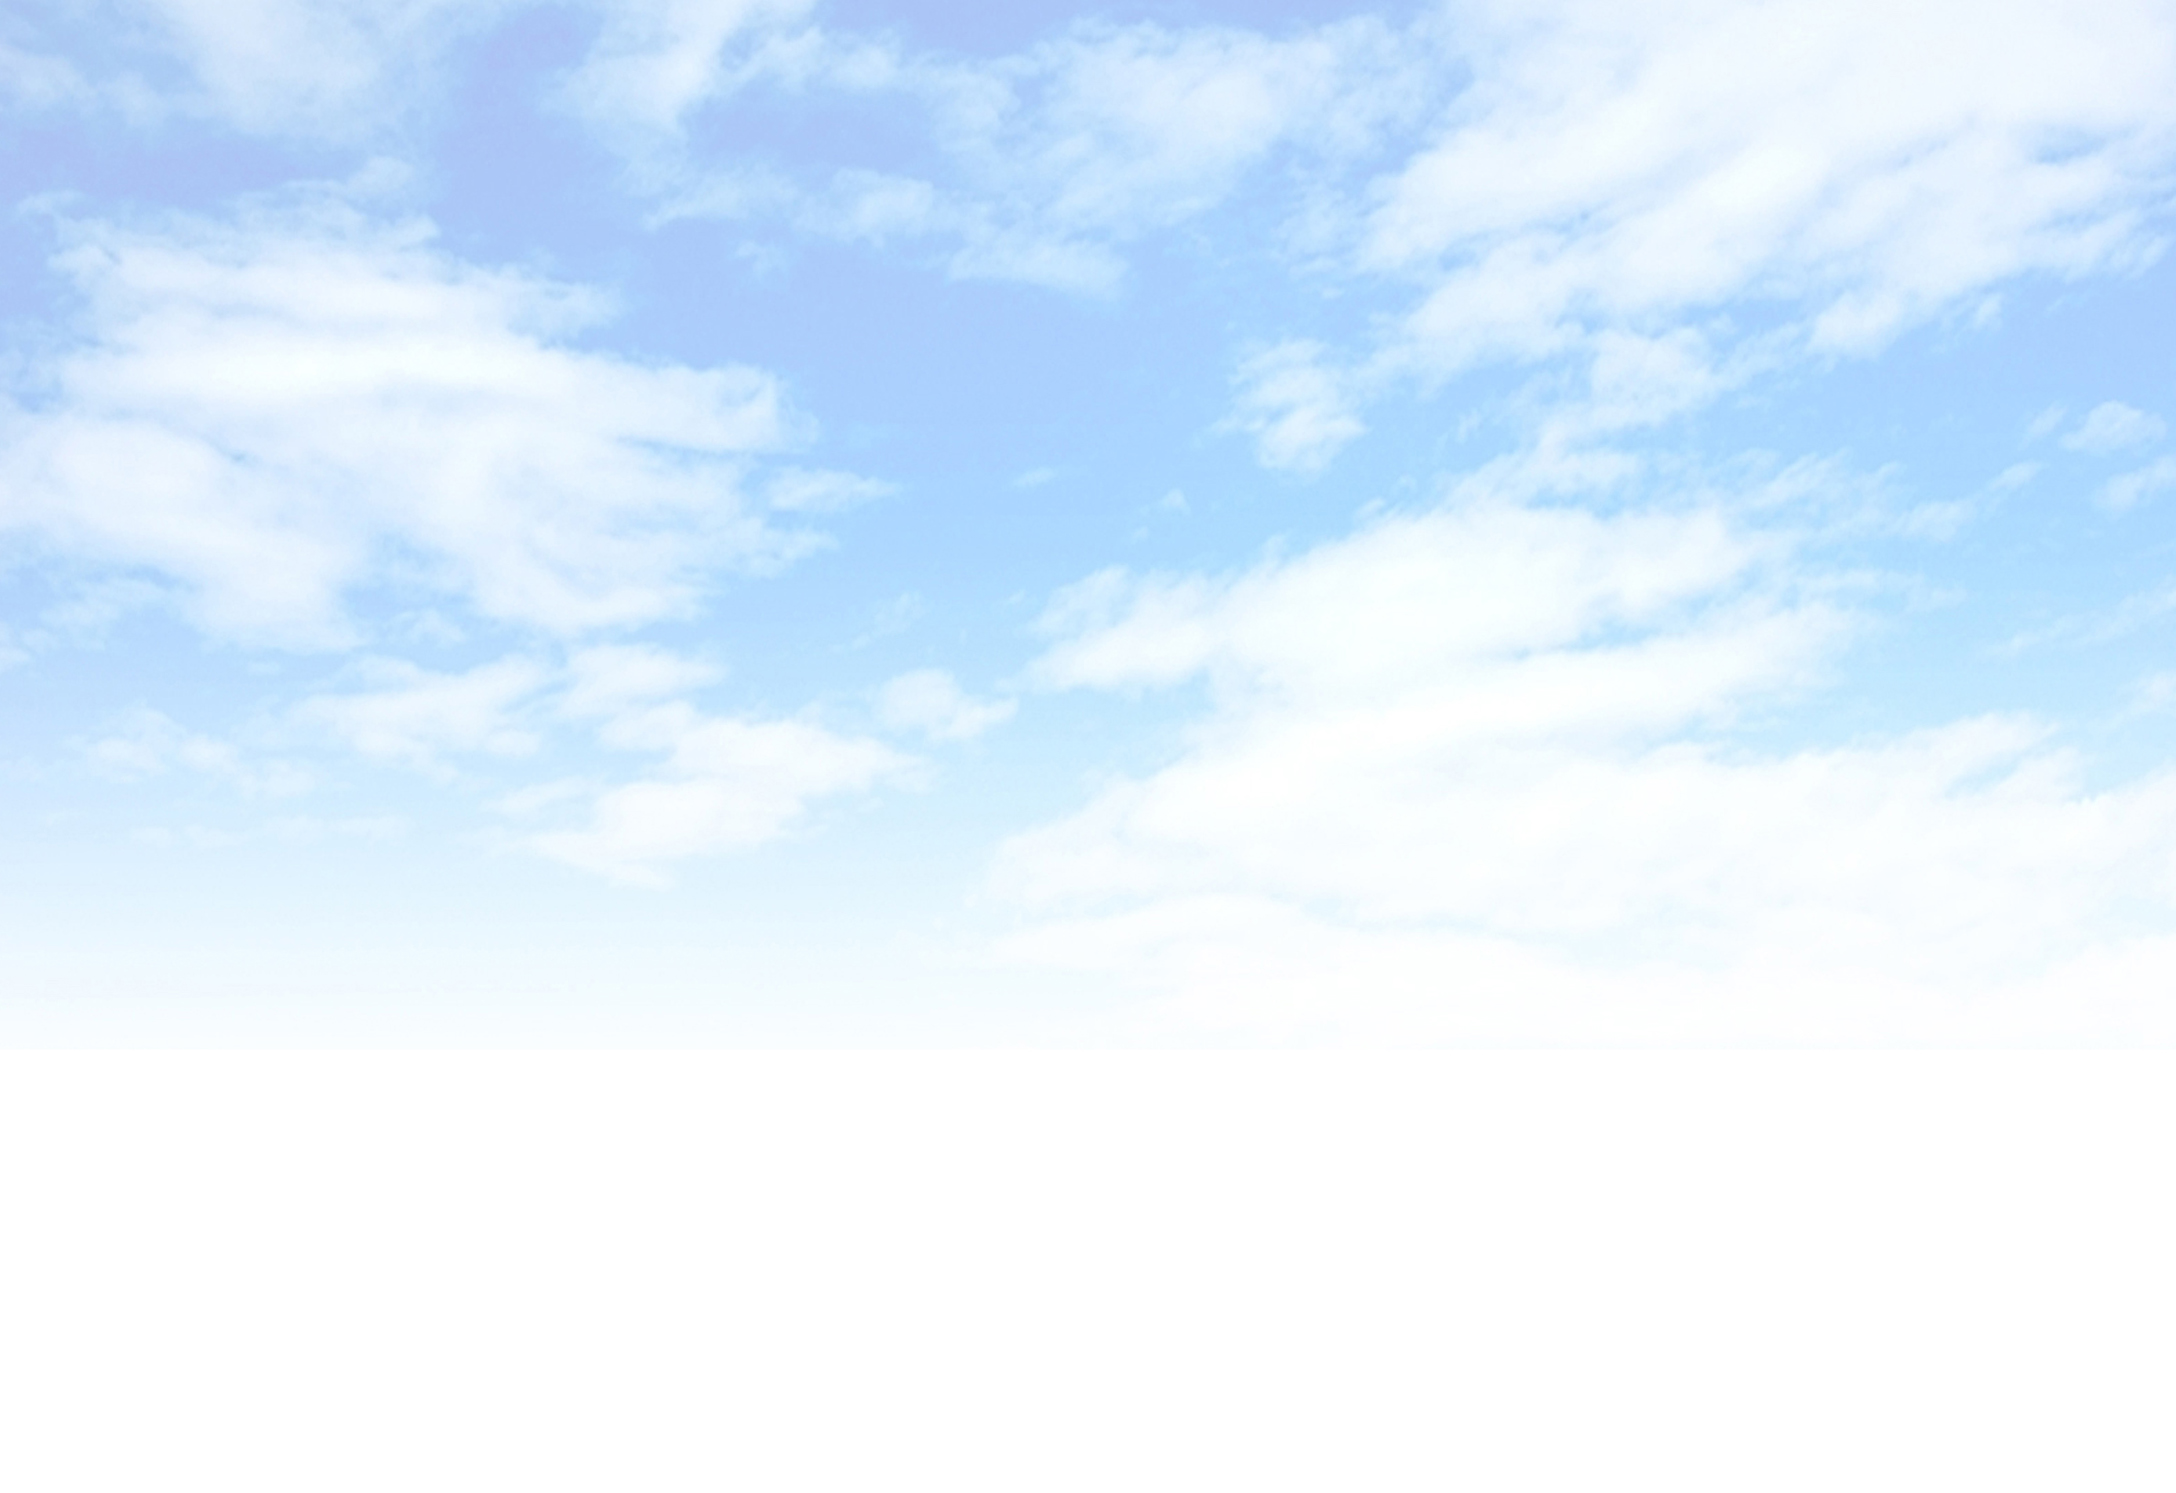 Cloudy Sky Background PNG - 159276